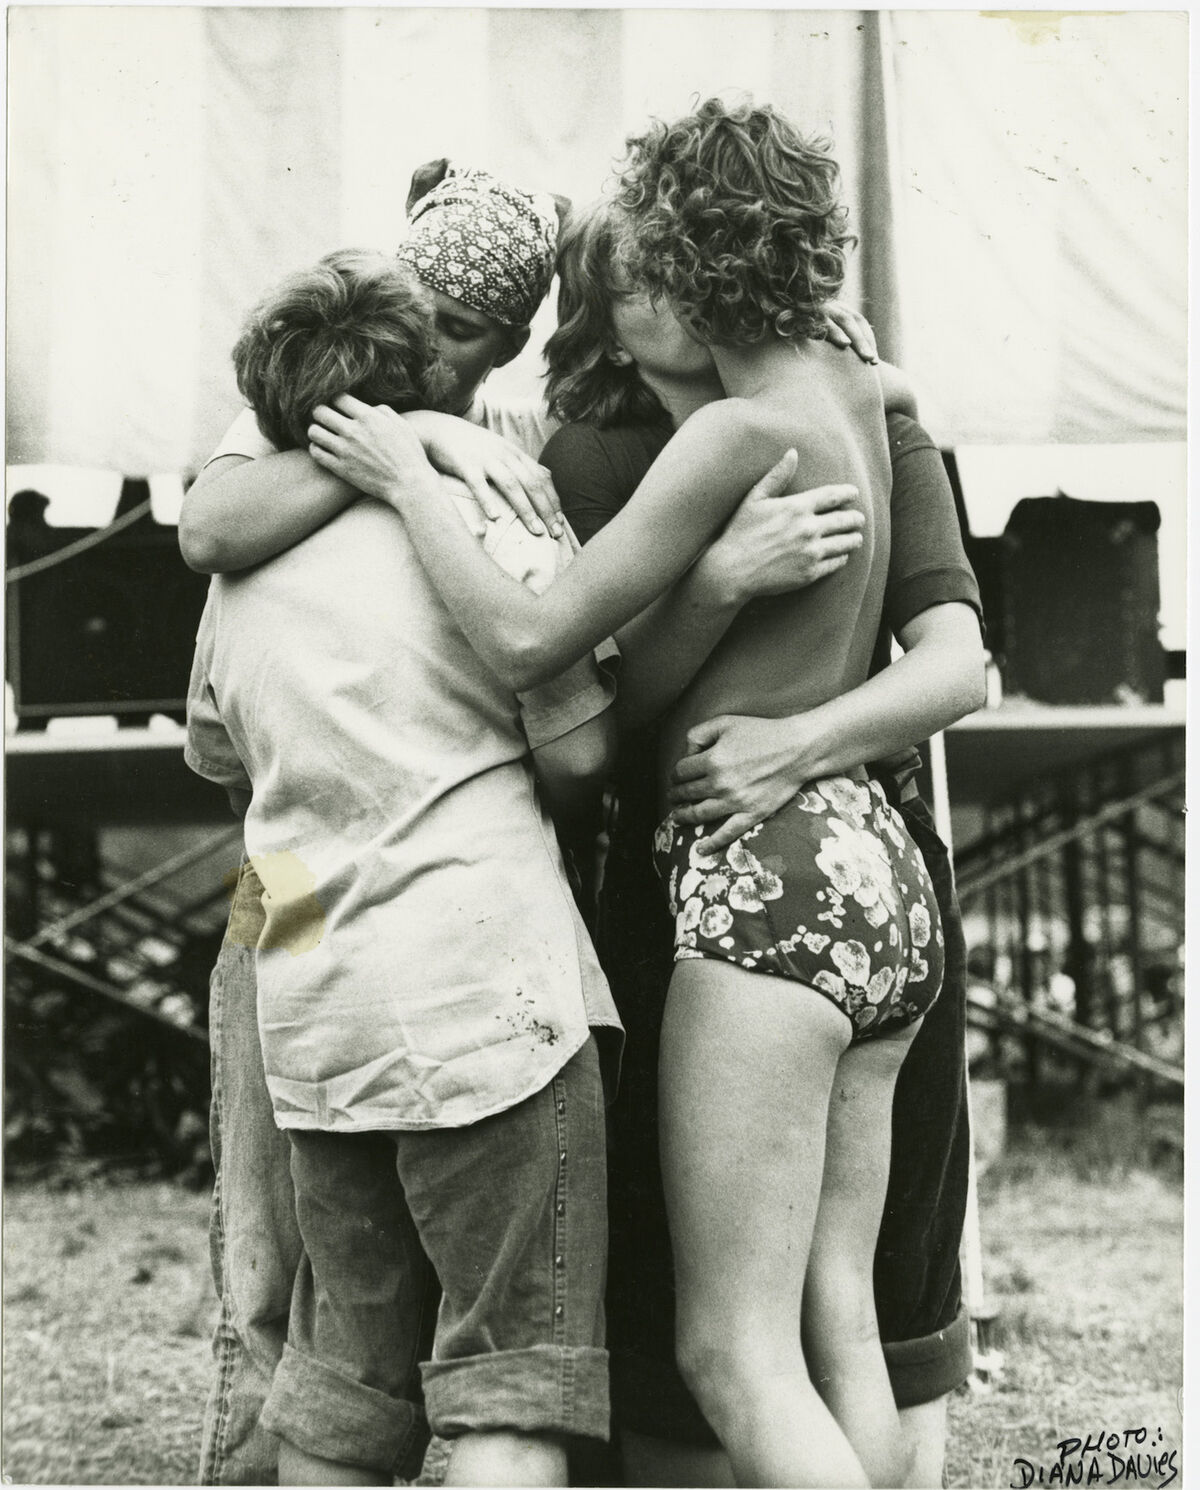 Diana Davies, Women embracing at Michigan Womyn's Music Festival, 1976. Courtesy of New York Public Library, Manuscripts and Archives Division.